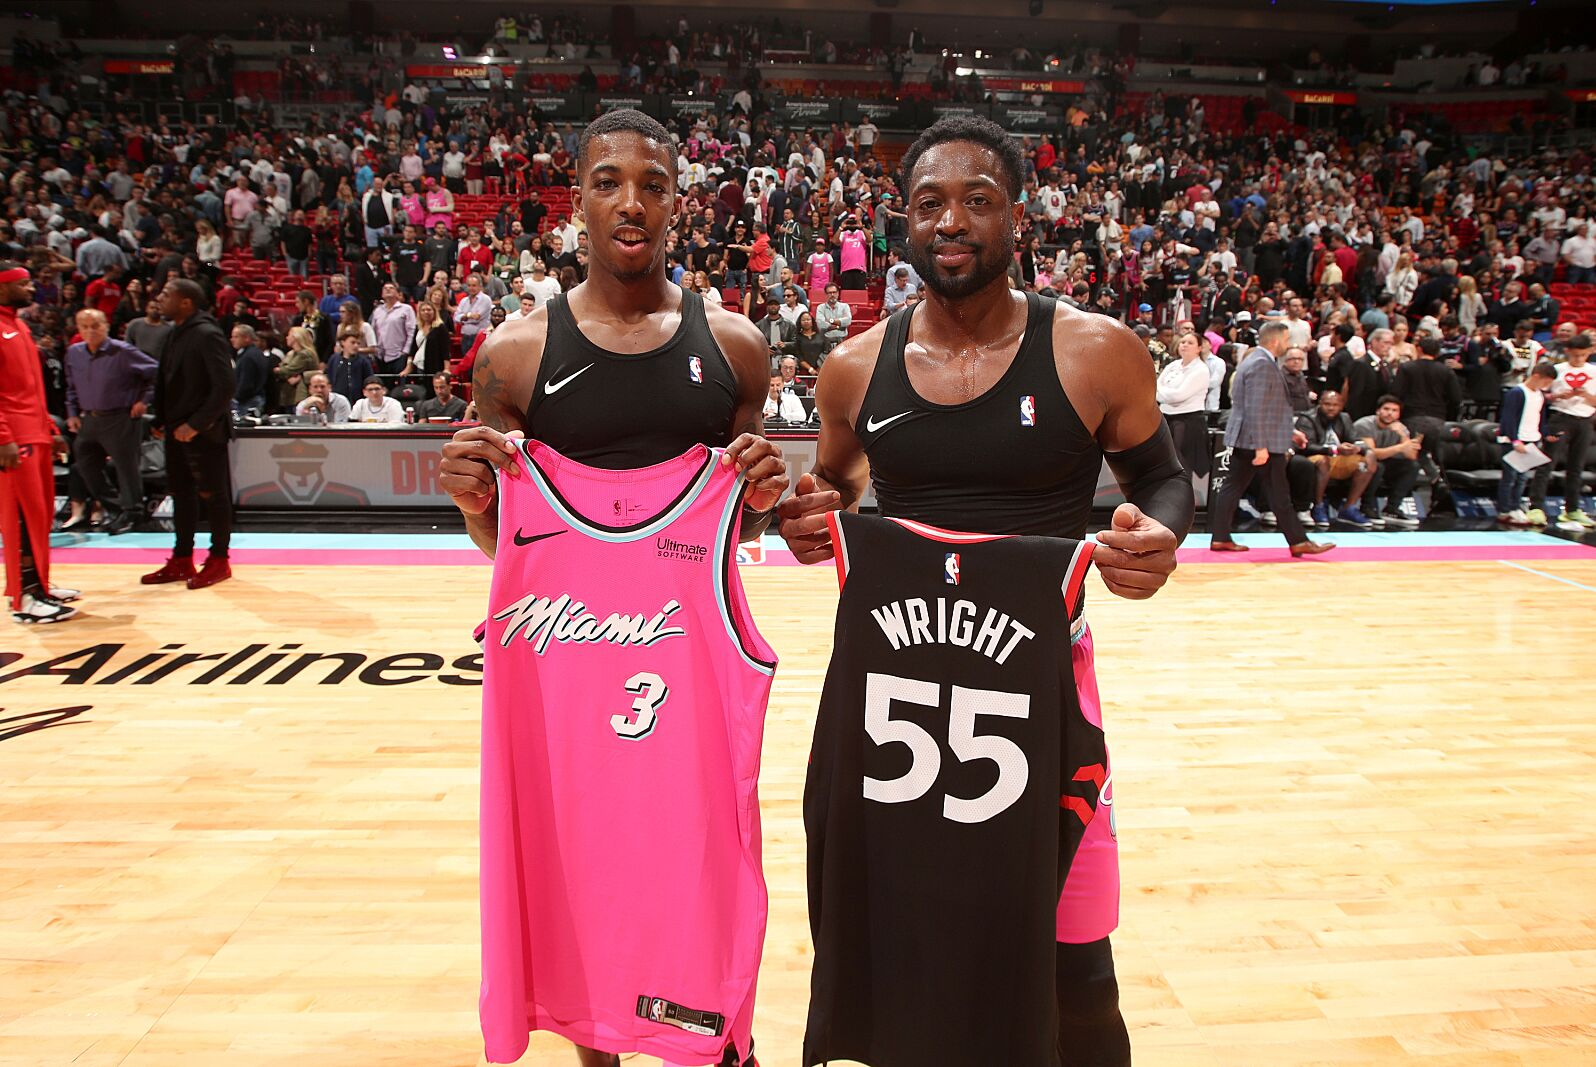 9786ac3b423 MIAMI, FL – DECEMBER 26: Delon Wright #55 of the Toronto Raptors and Dwyane  Wade #3 of the Miami Heat exchange jerseys after the game on December 26,  ...